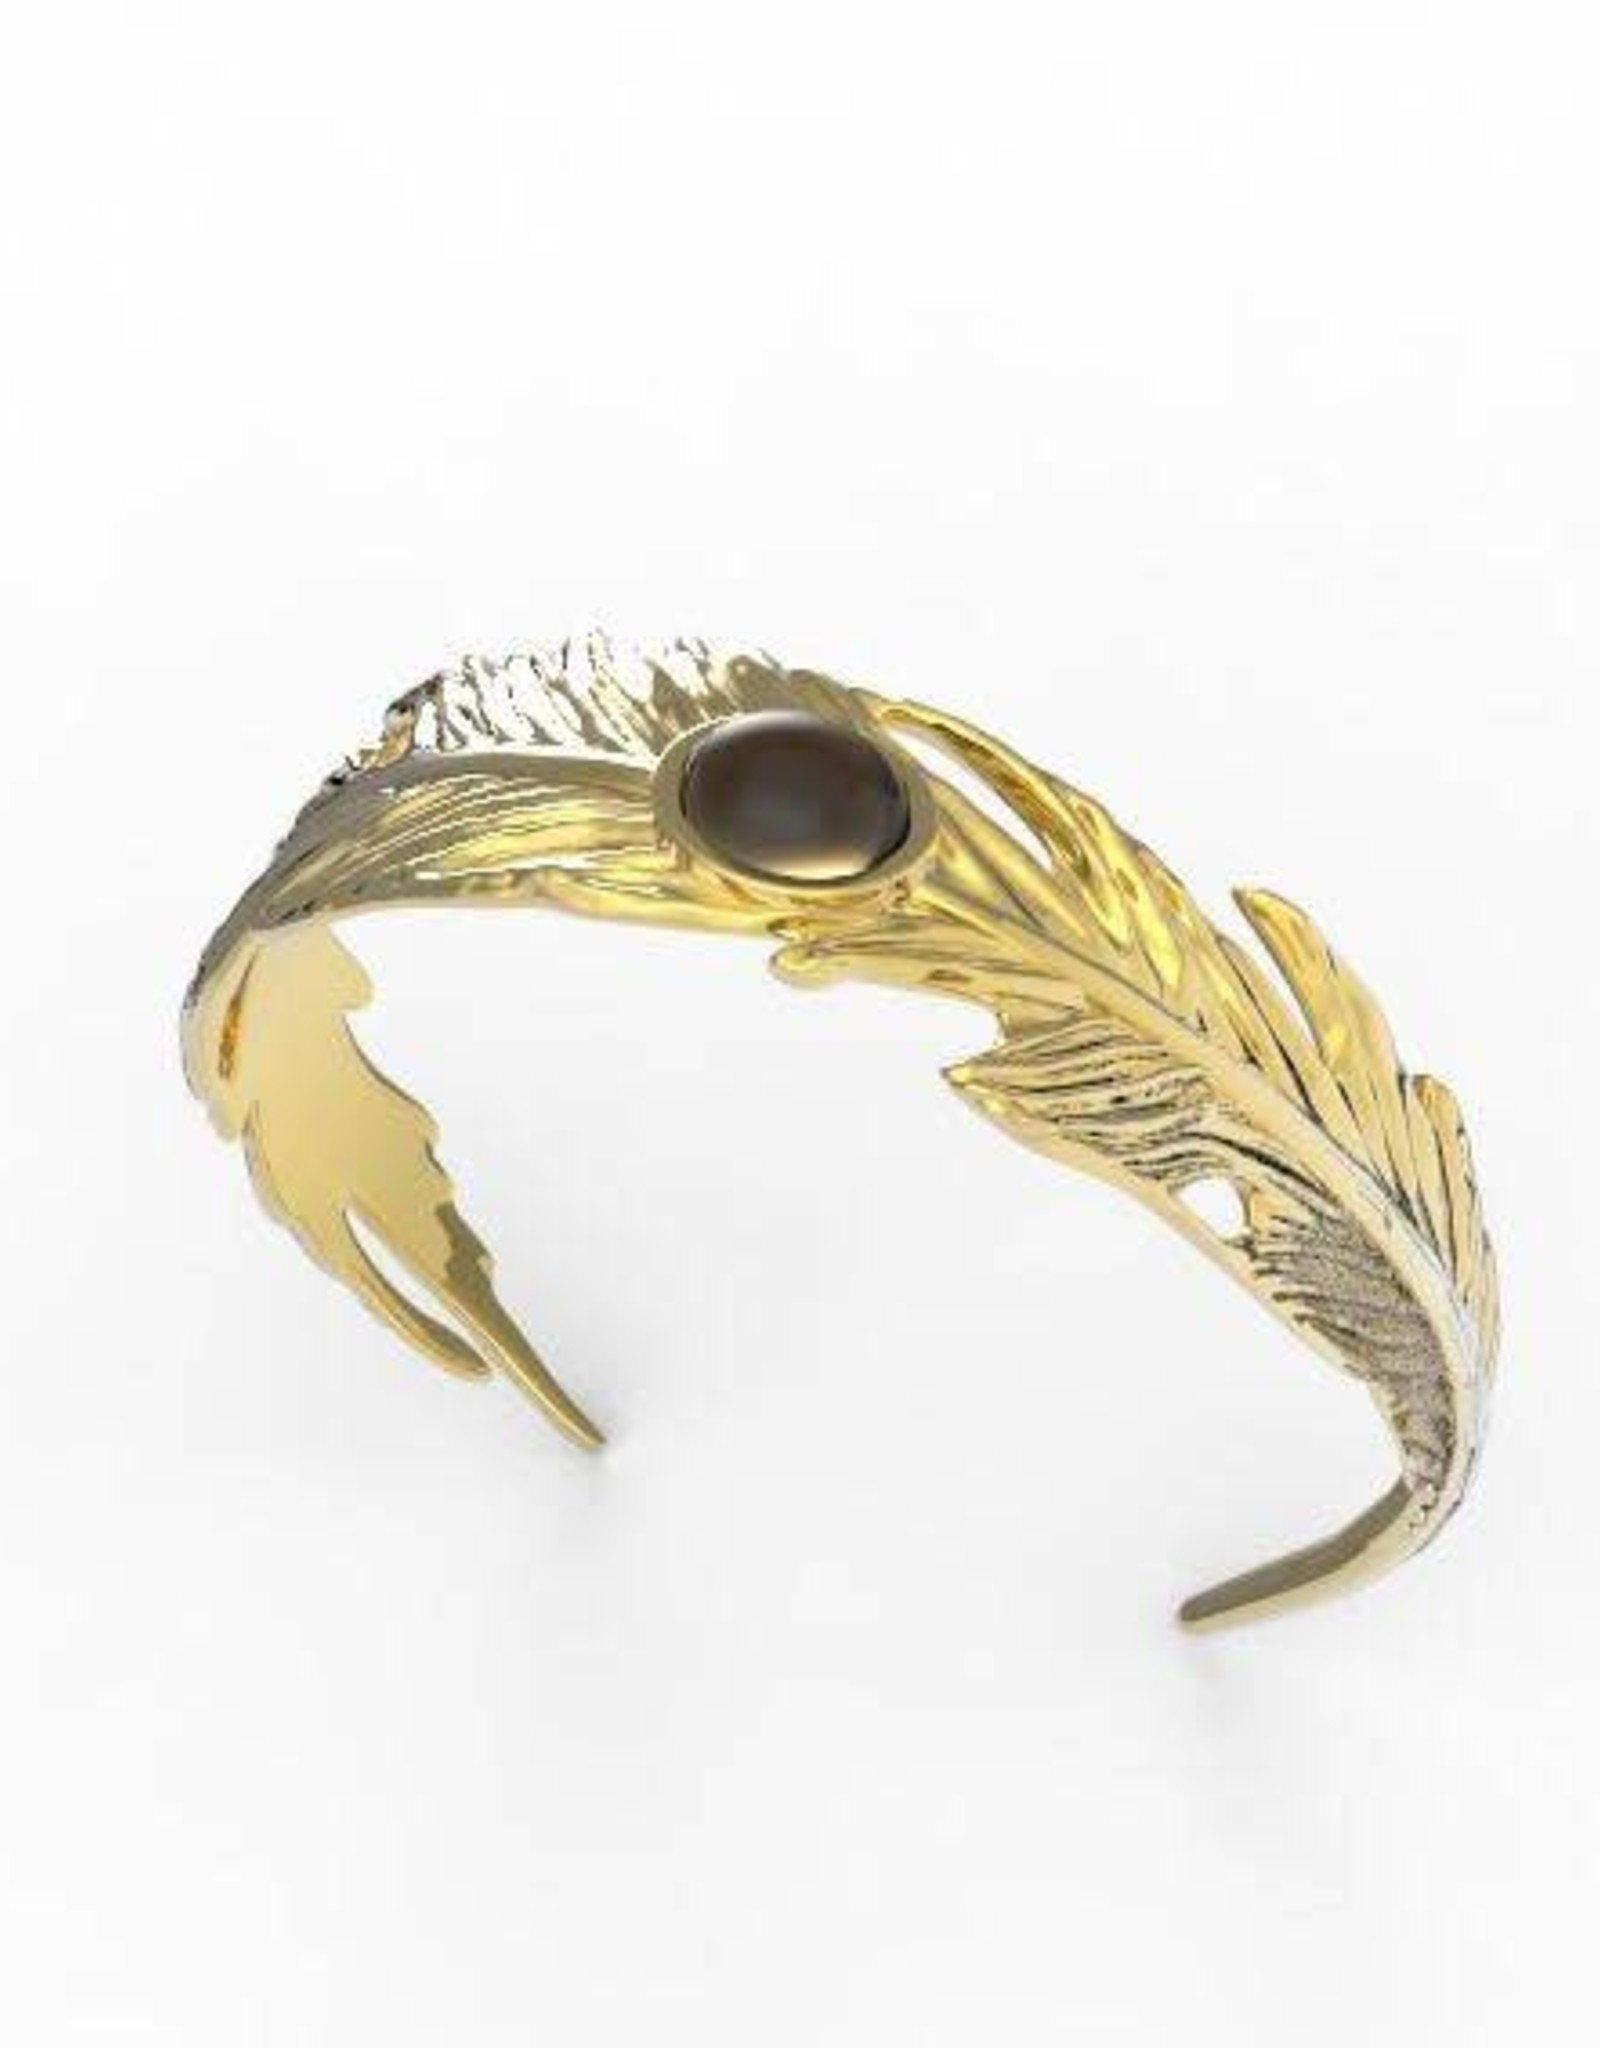 AVORIGEN BRAZALETE FEATHER, AVORIGEN